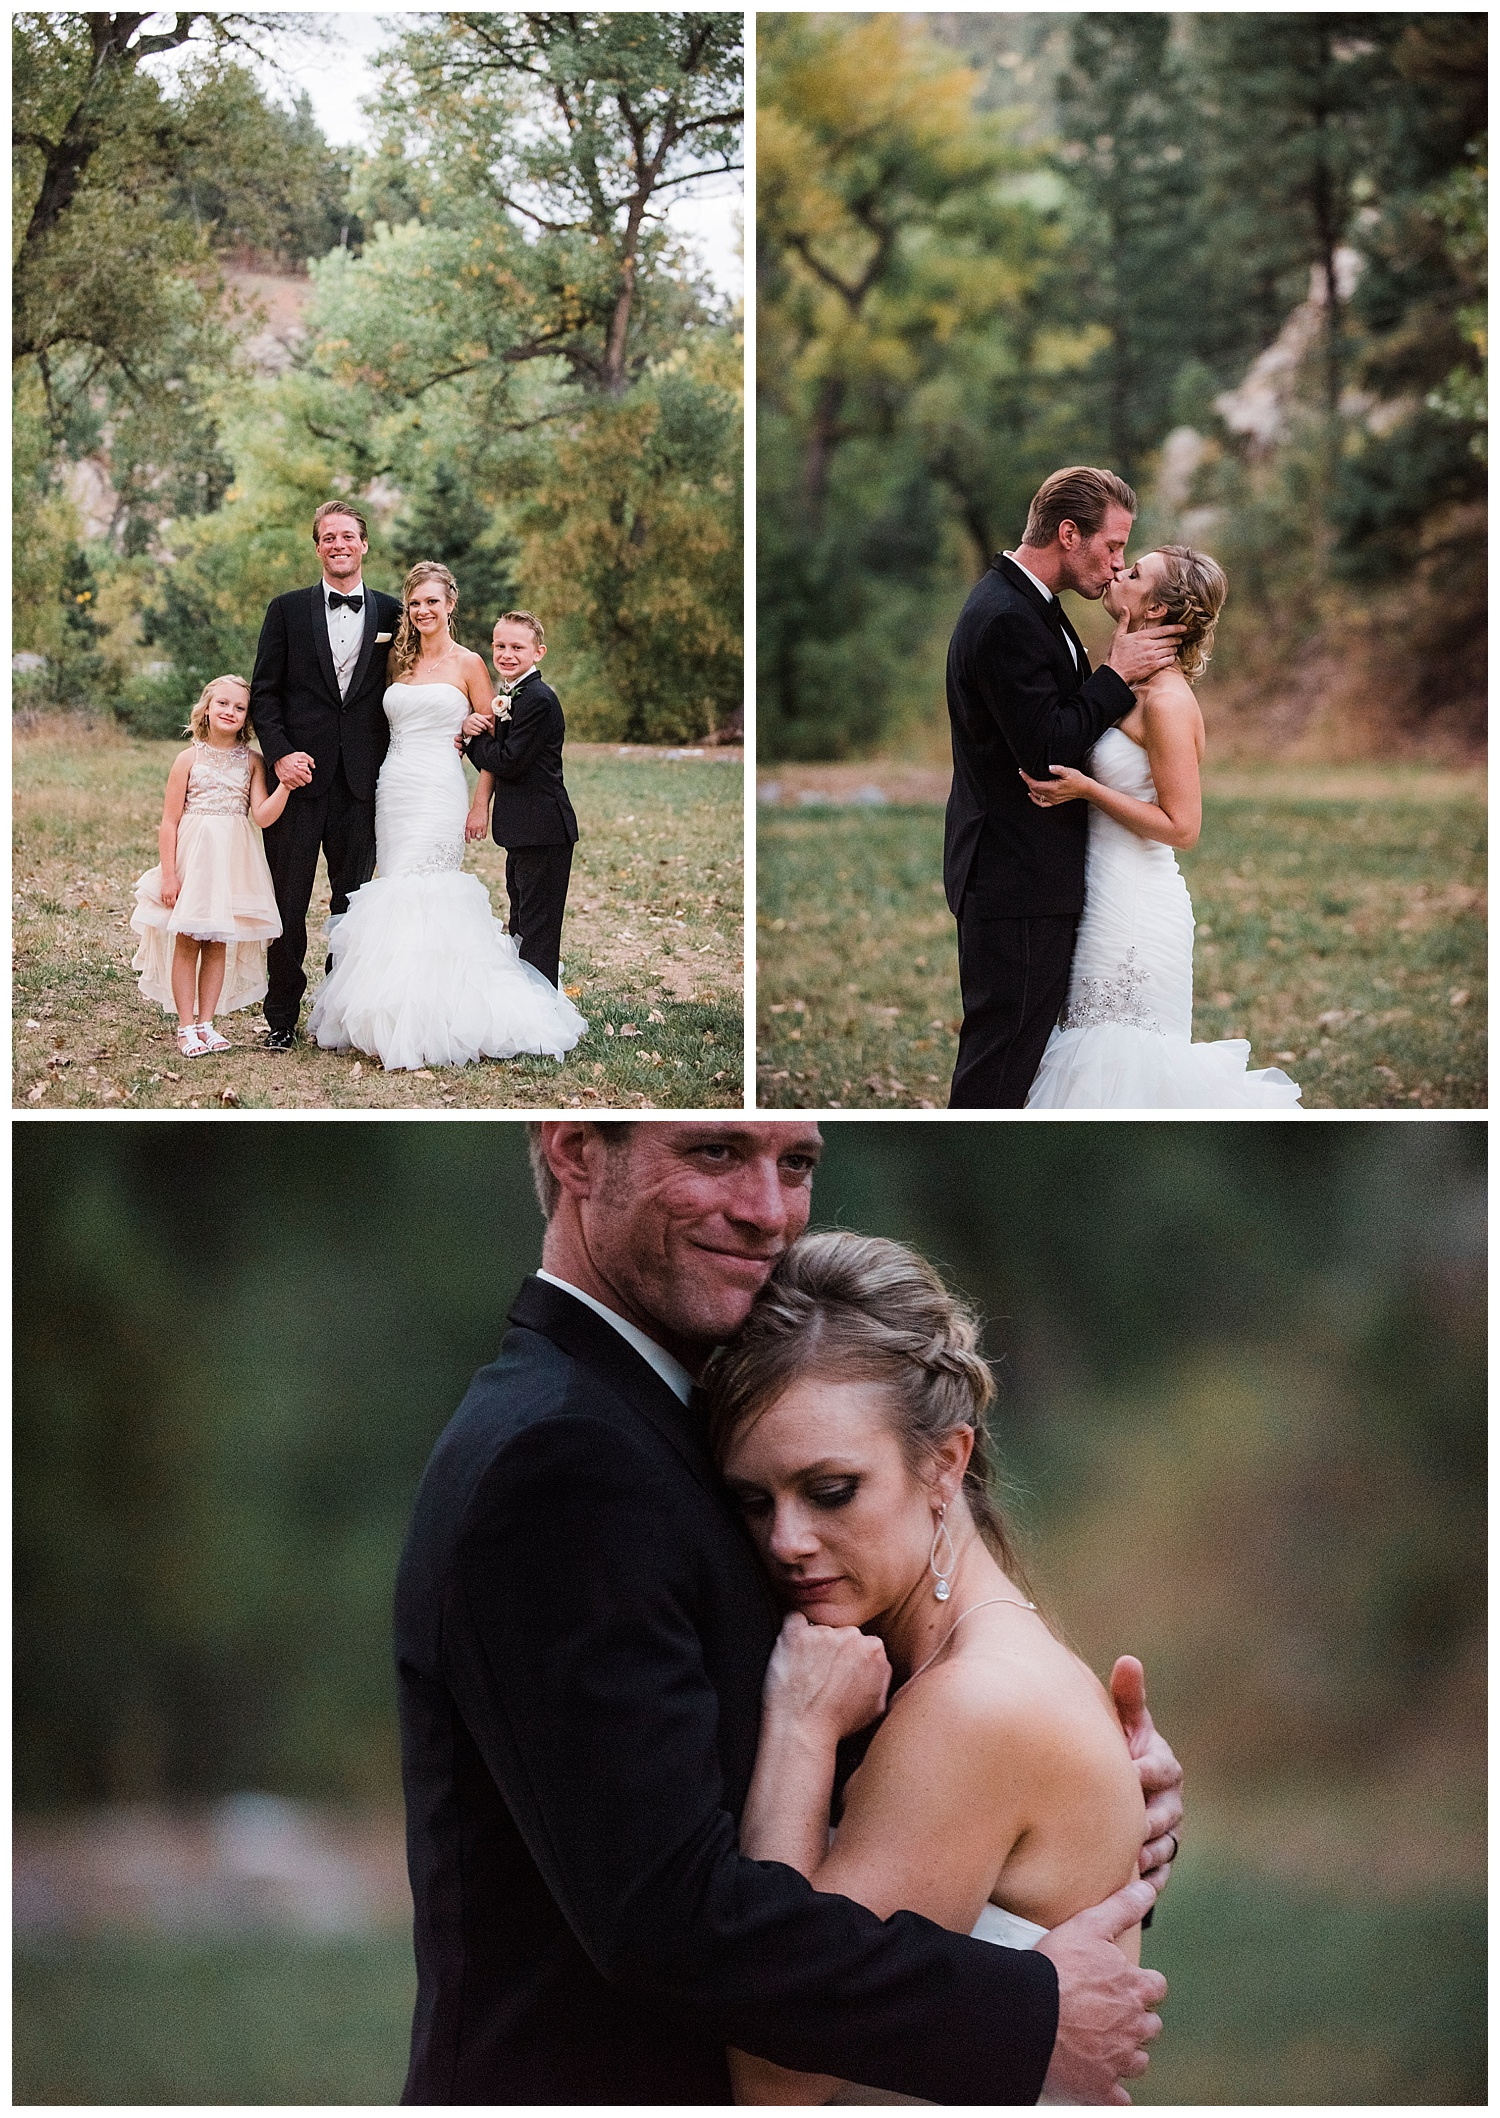 Wedgewood_Boulder_Creek_Wedding_Venue_Colorado_Photographer_Apollo_Fields_056.jpg